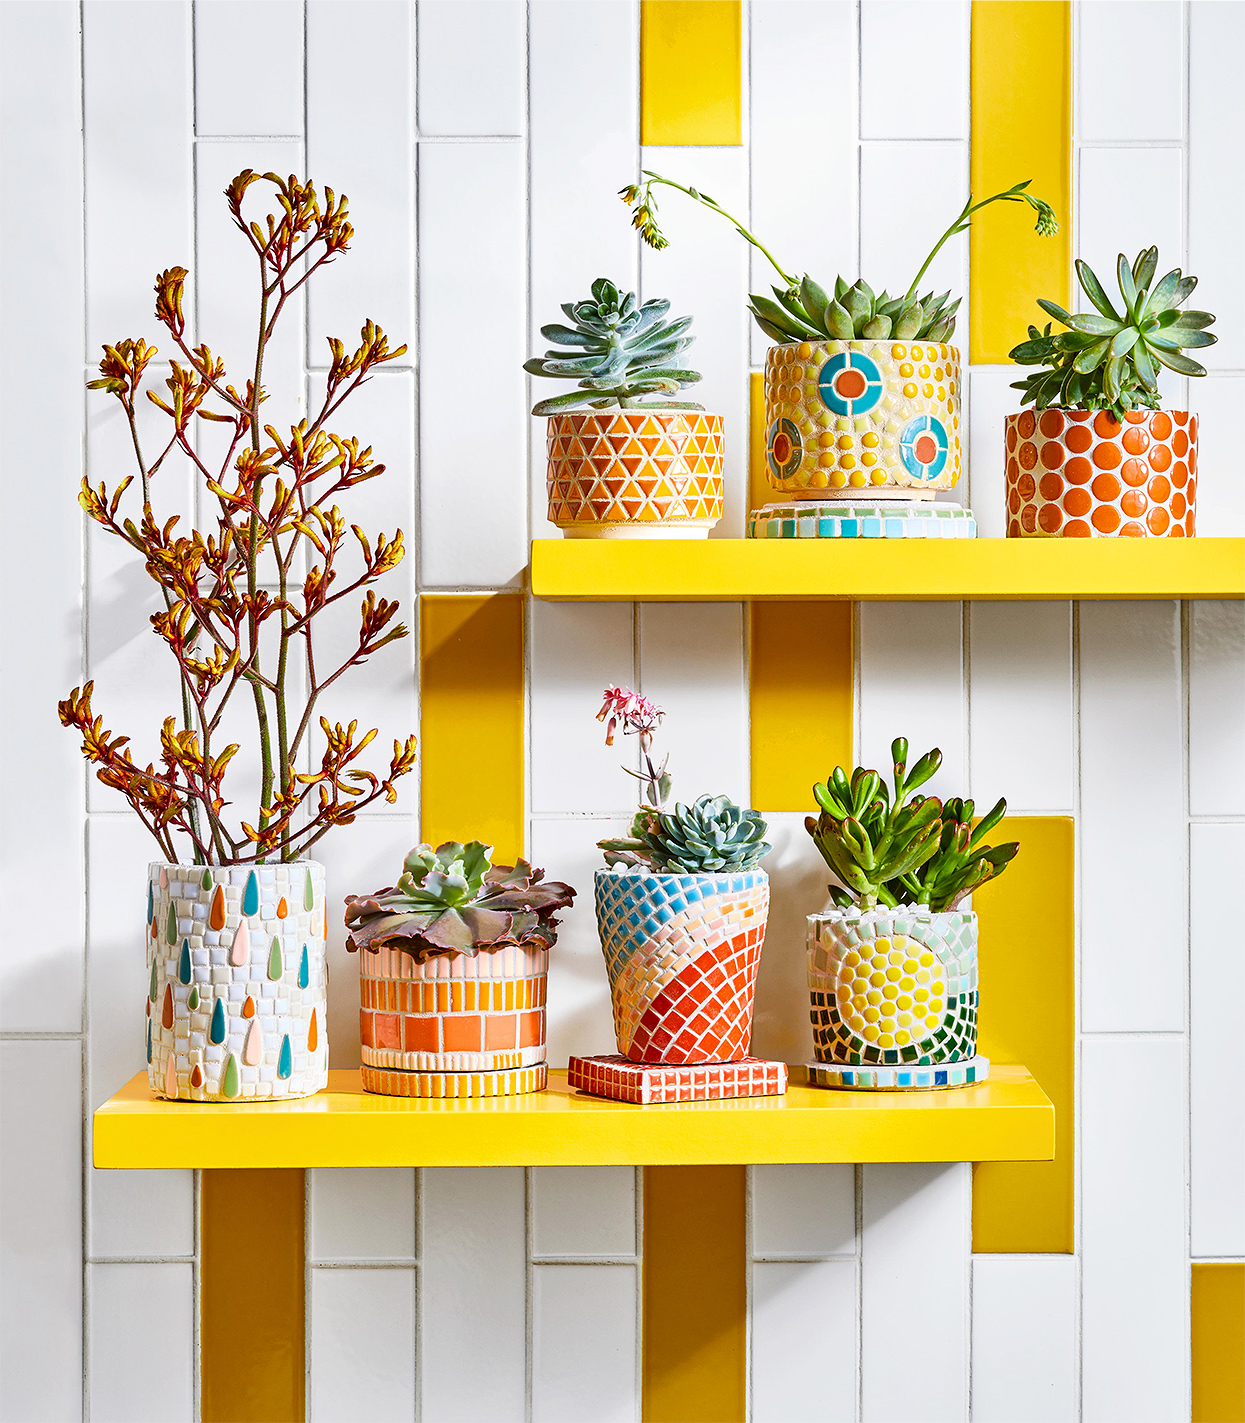 diy finished mosaic tile planters on yellow shelves